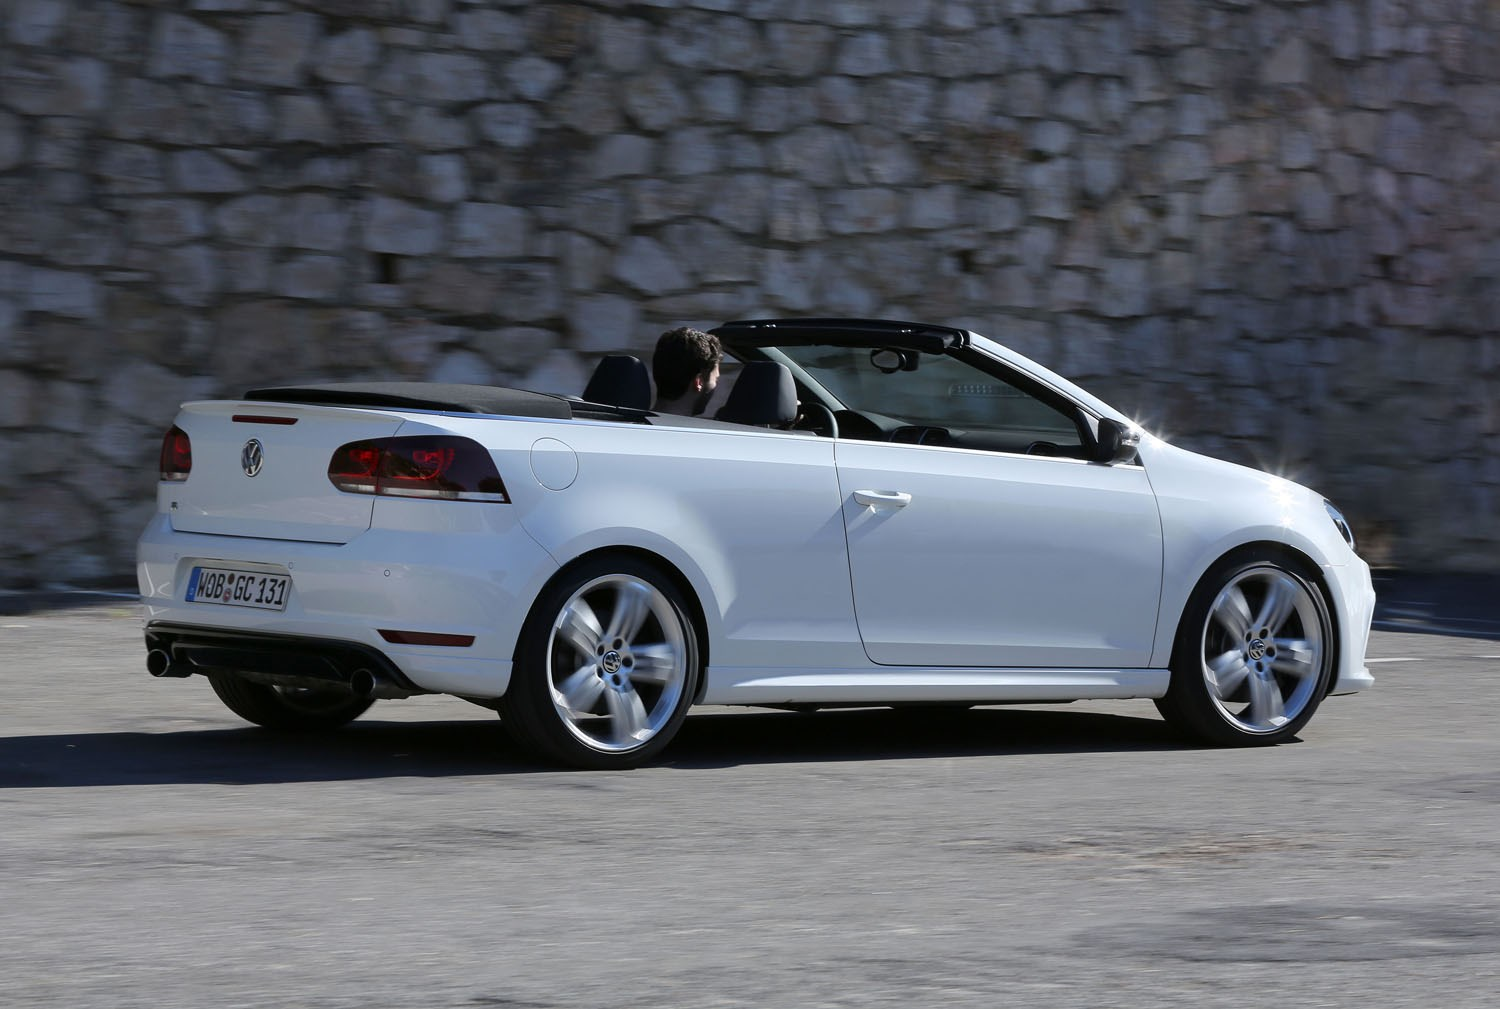 Golf Cabriolet Used Cars For Sale